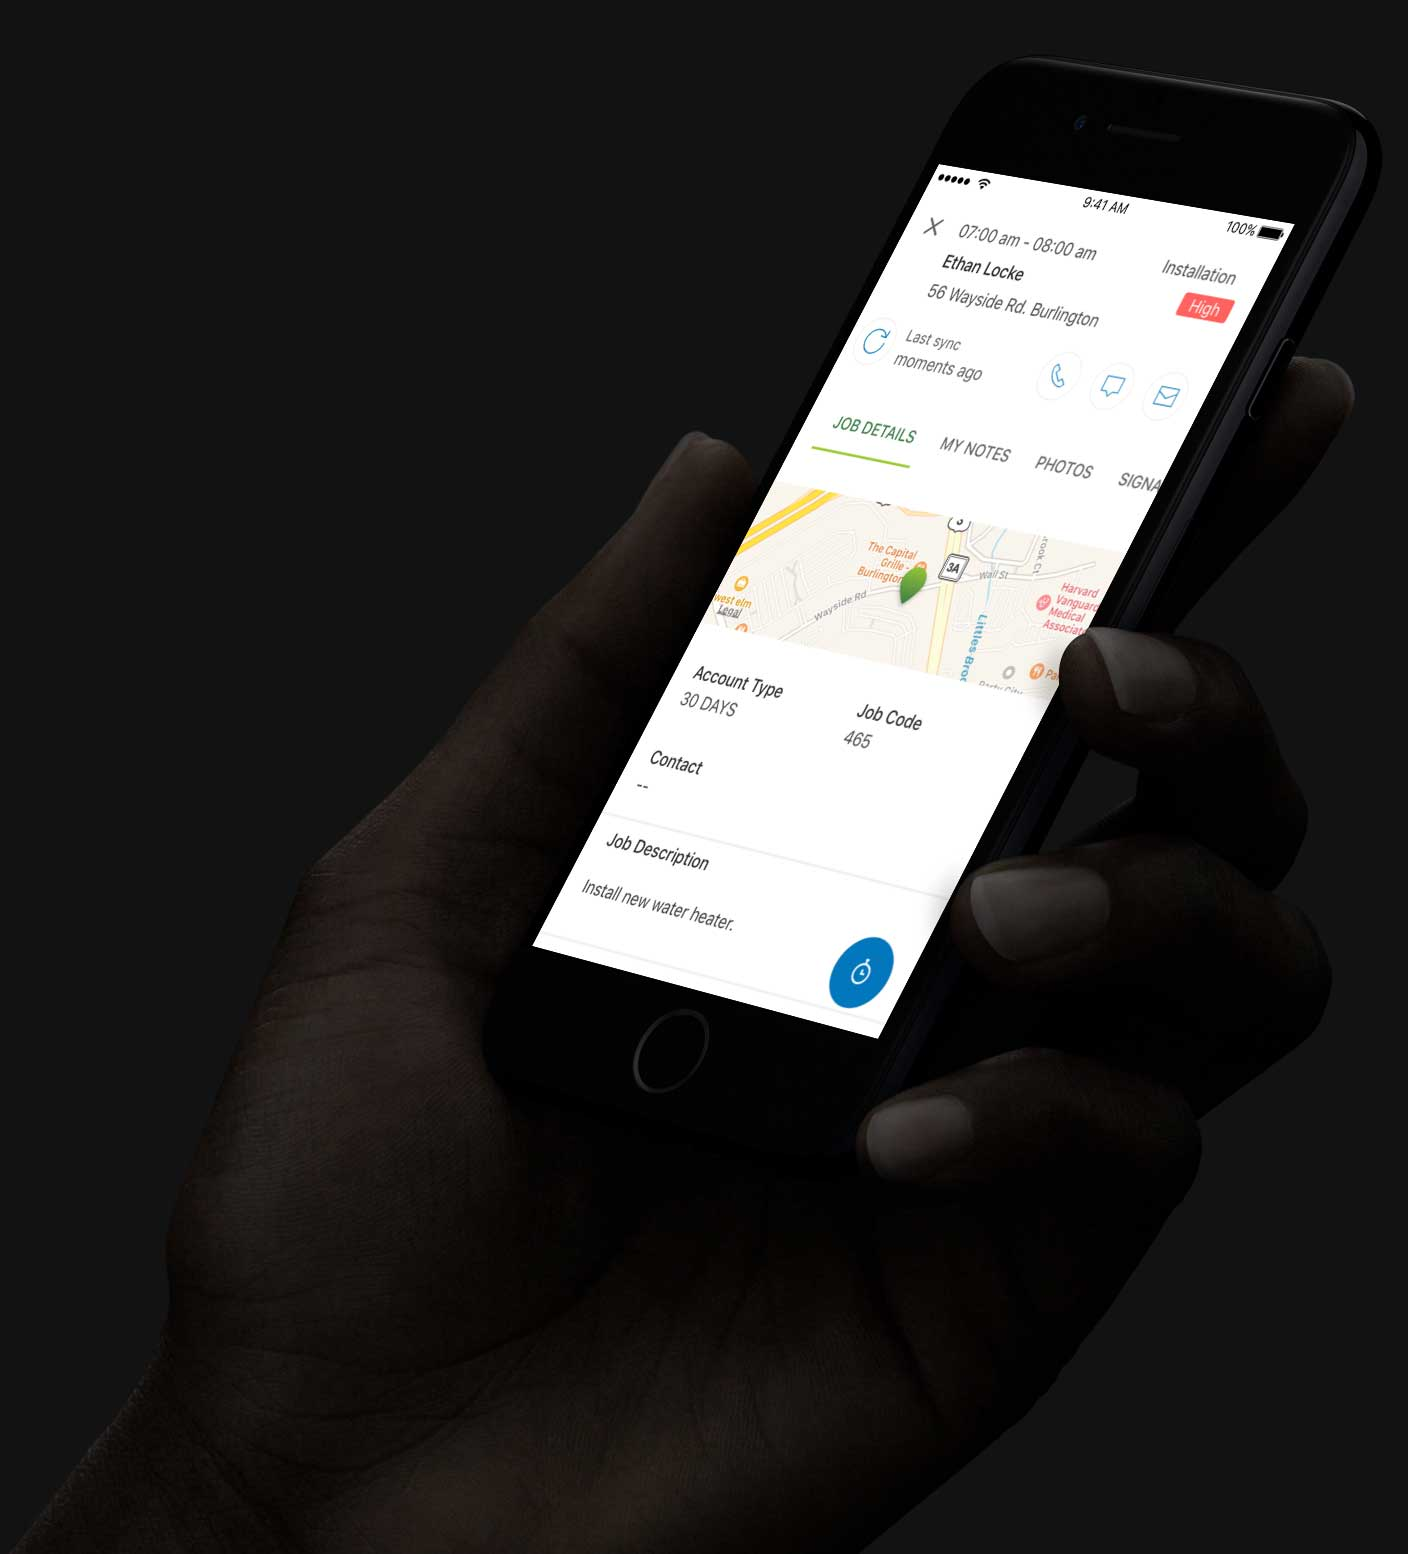 The Best Built-In Find Phone Location Tracker Apps